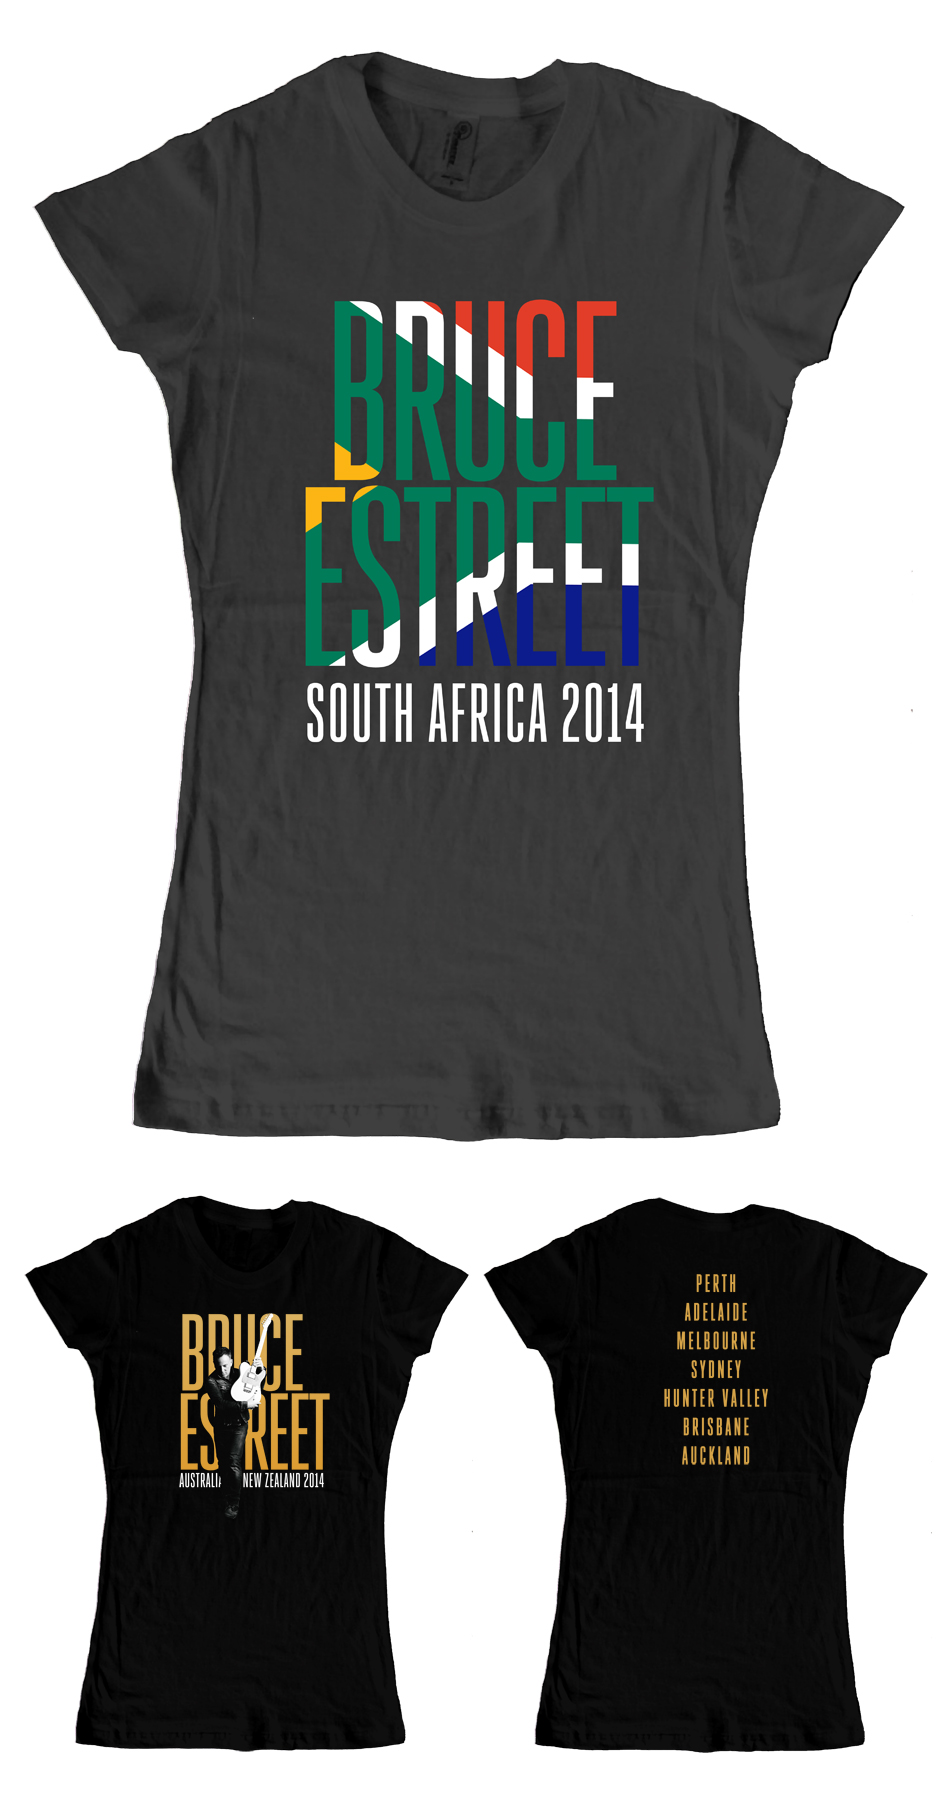 South Africa tees